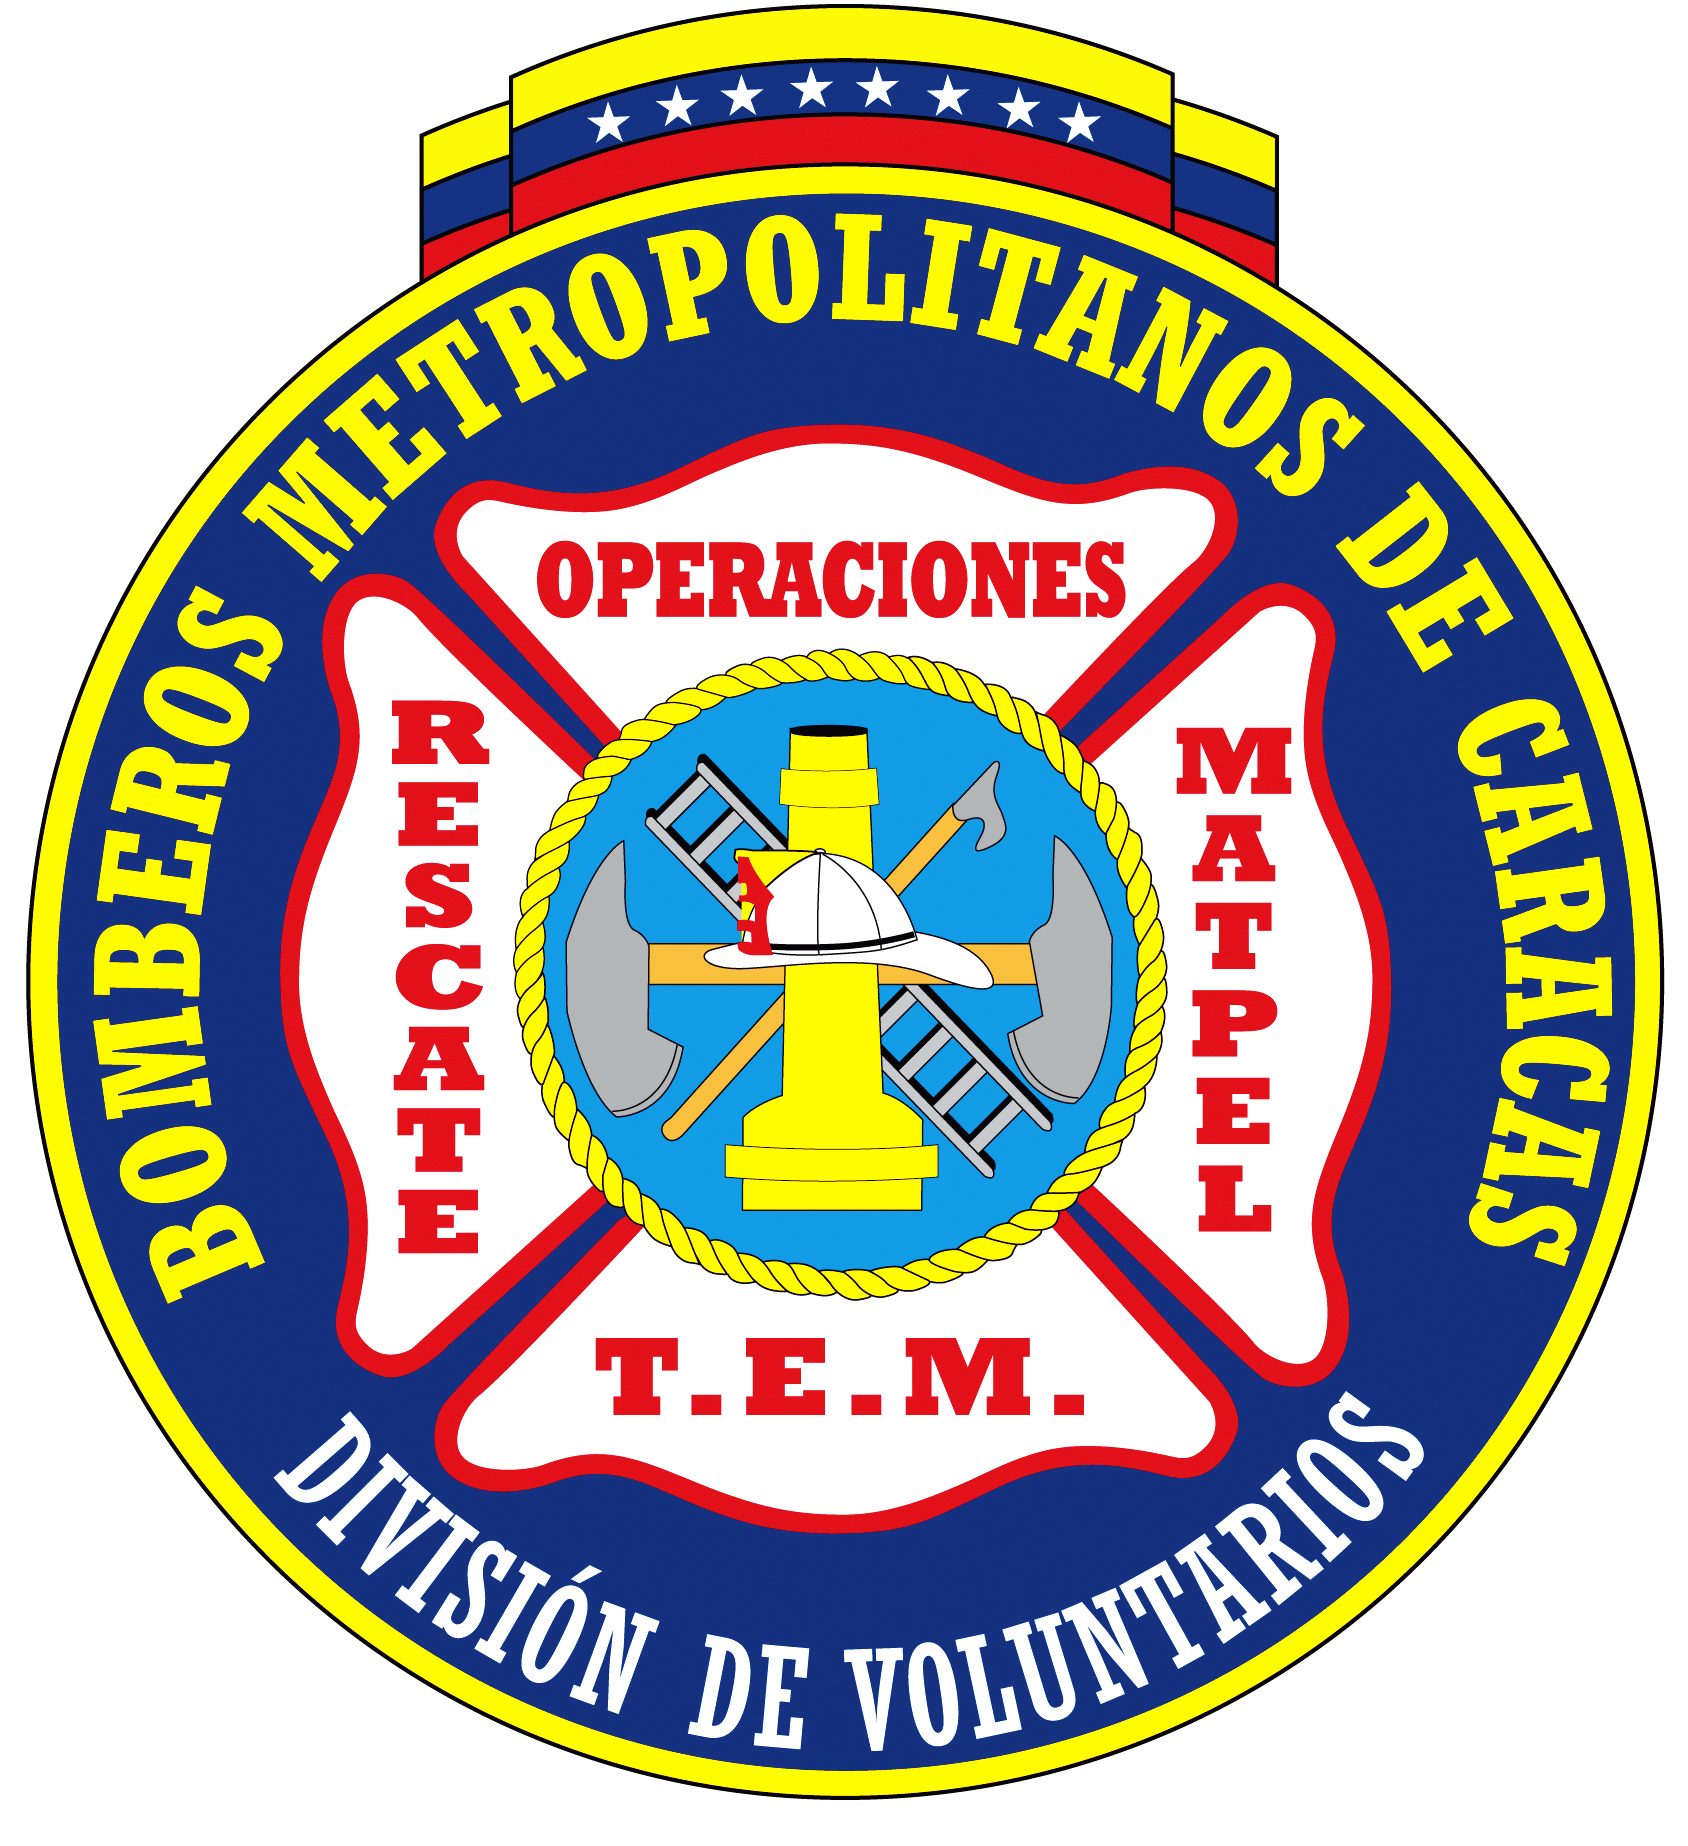 Bros Voluntarios Caracas